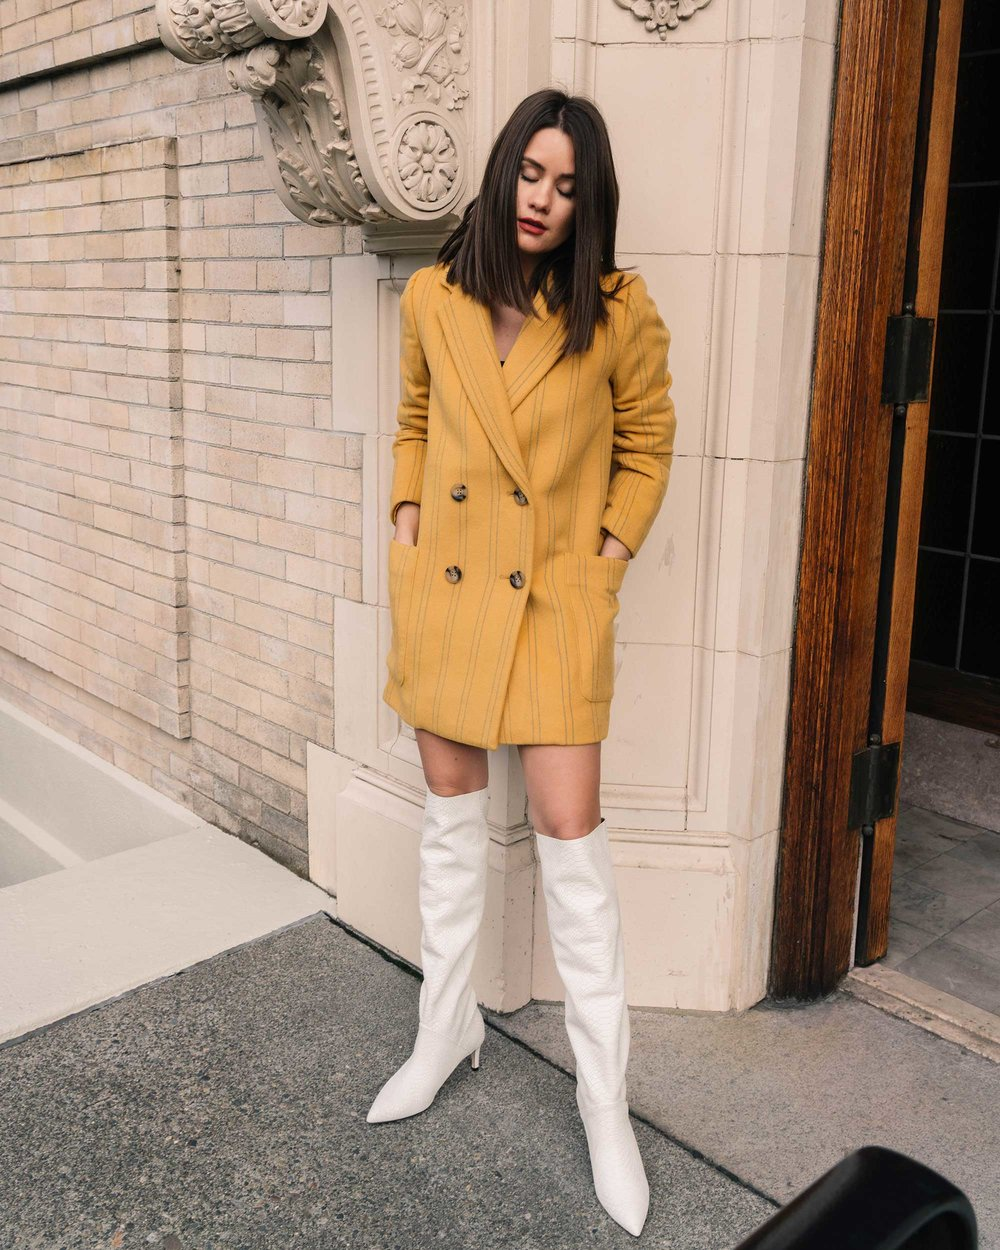 Sarah Butler of Sarah Styles Seattle wears Joie Revet White Snake Print Tall Boots and Madewell Double-Breasted Yellow Coat | @sarahchristine7.jpg